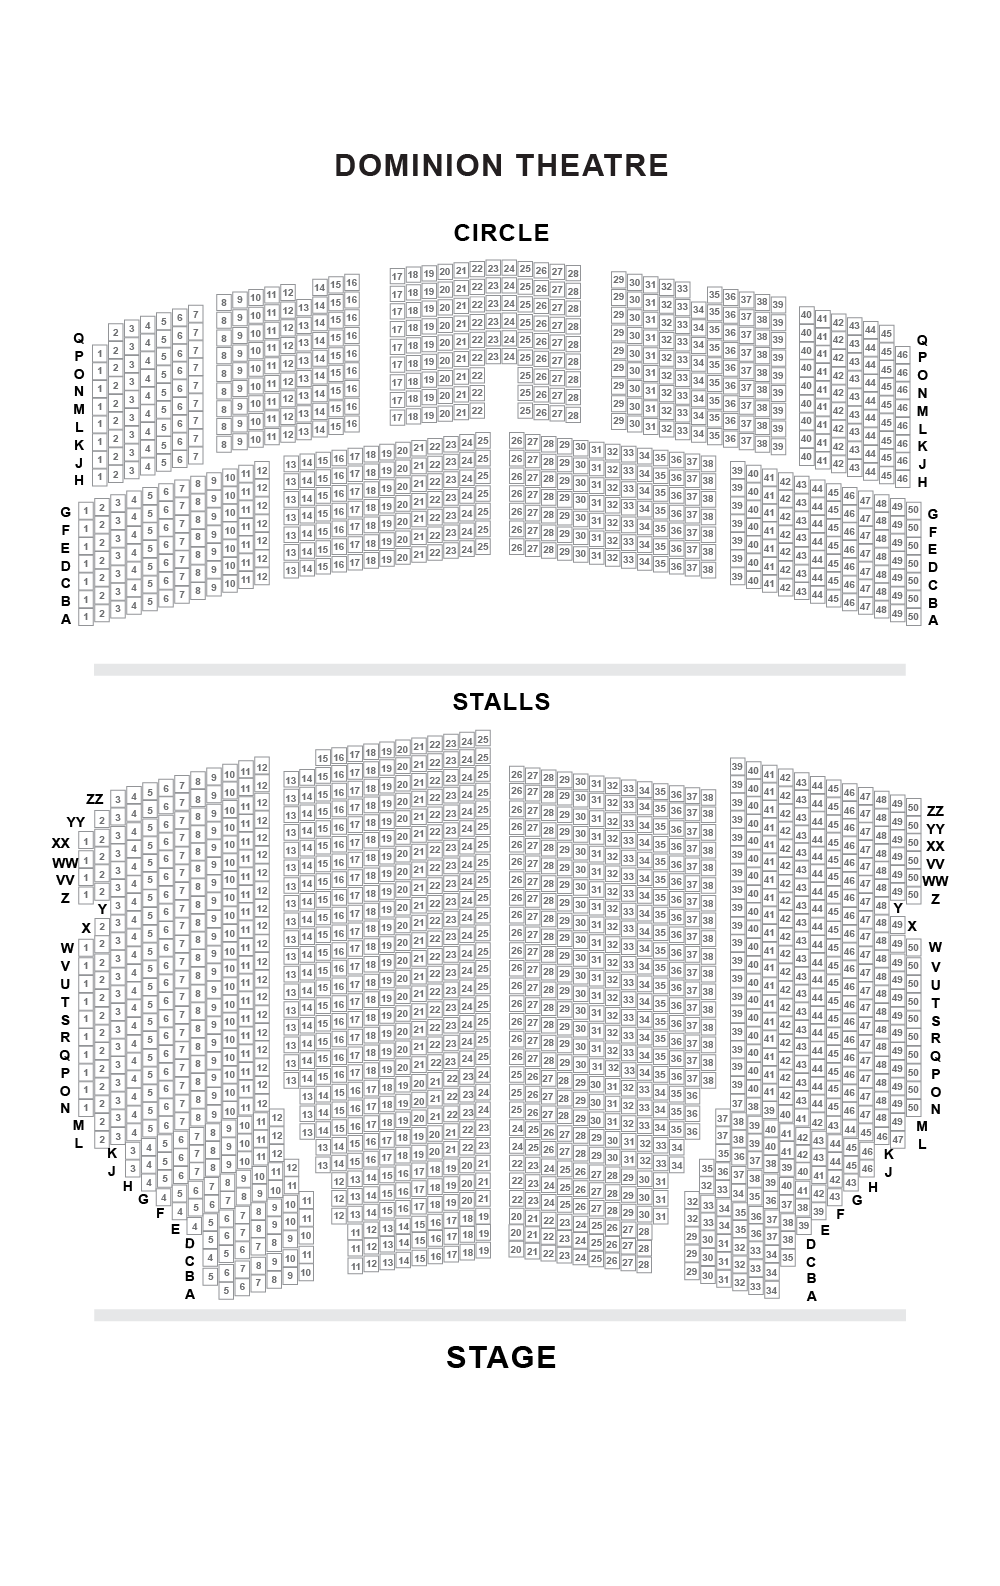 Dominion Theatre Seating Plan